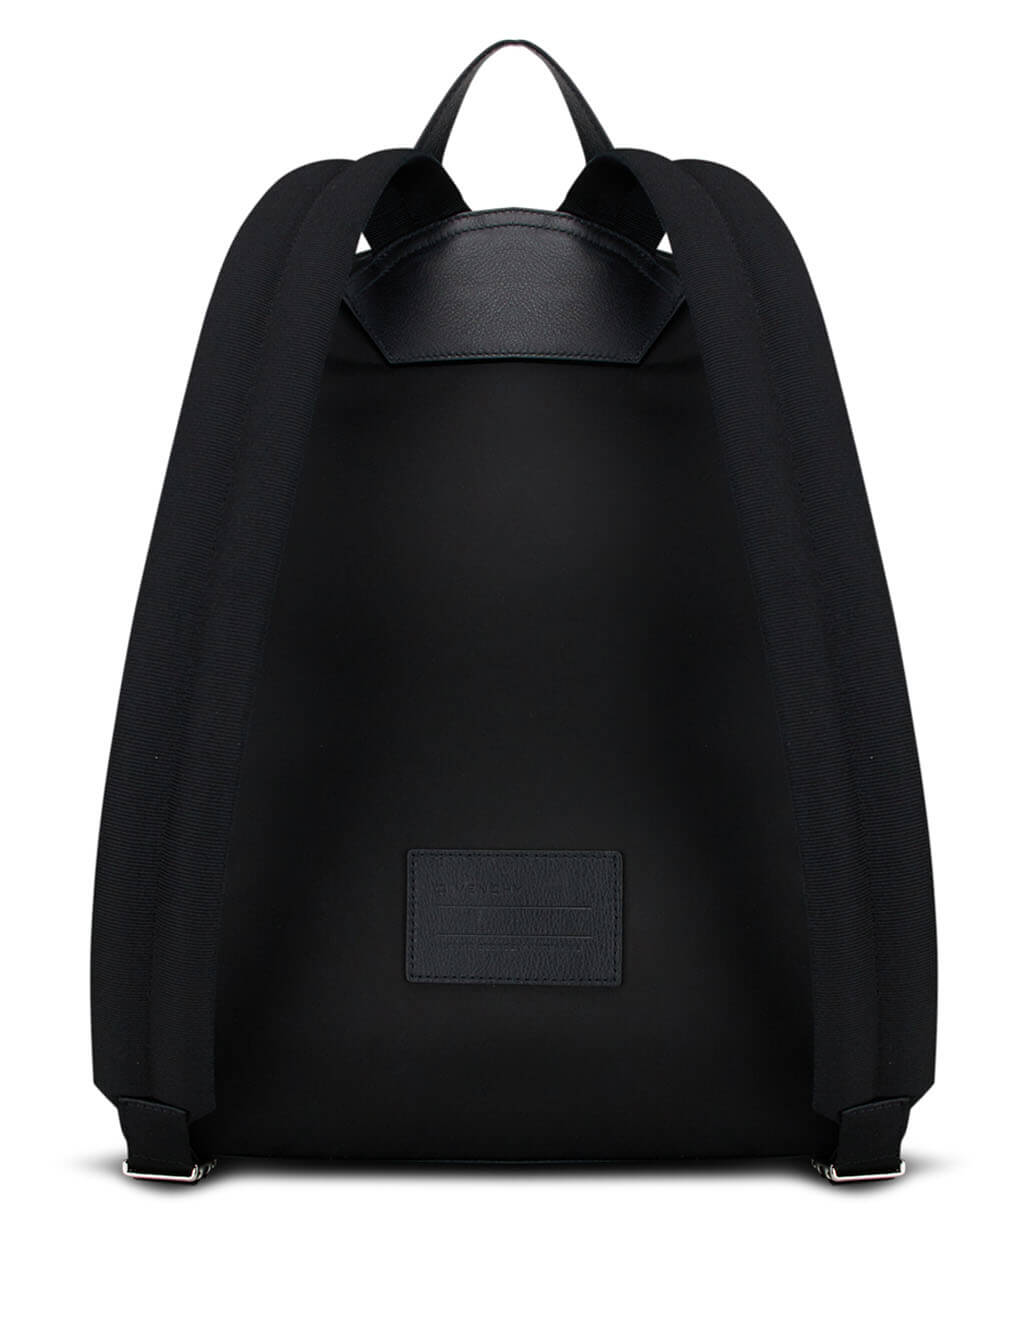 Men's Black Givenchy Bond Backpack BK506VK0VQ 003